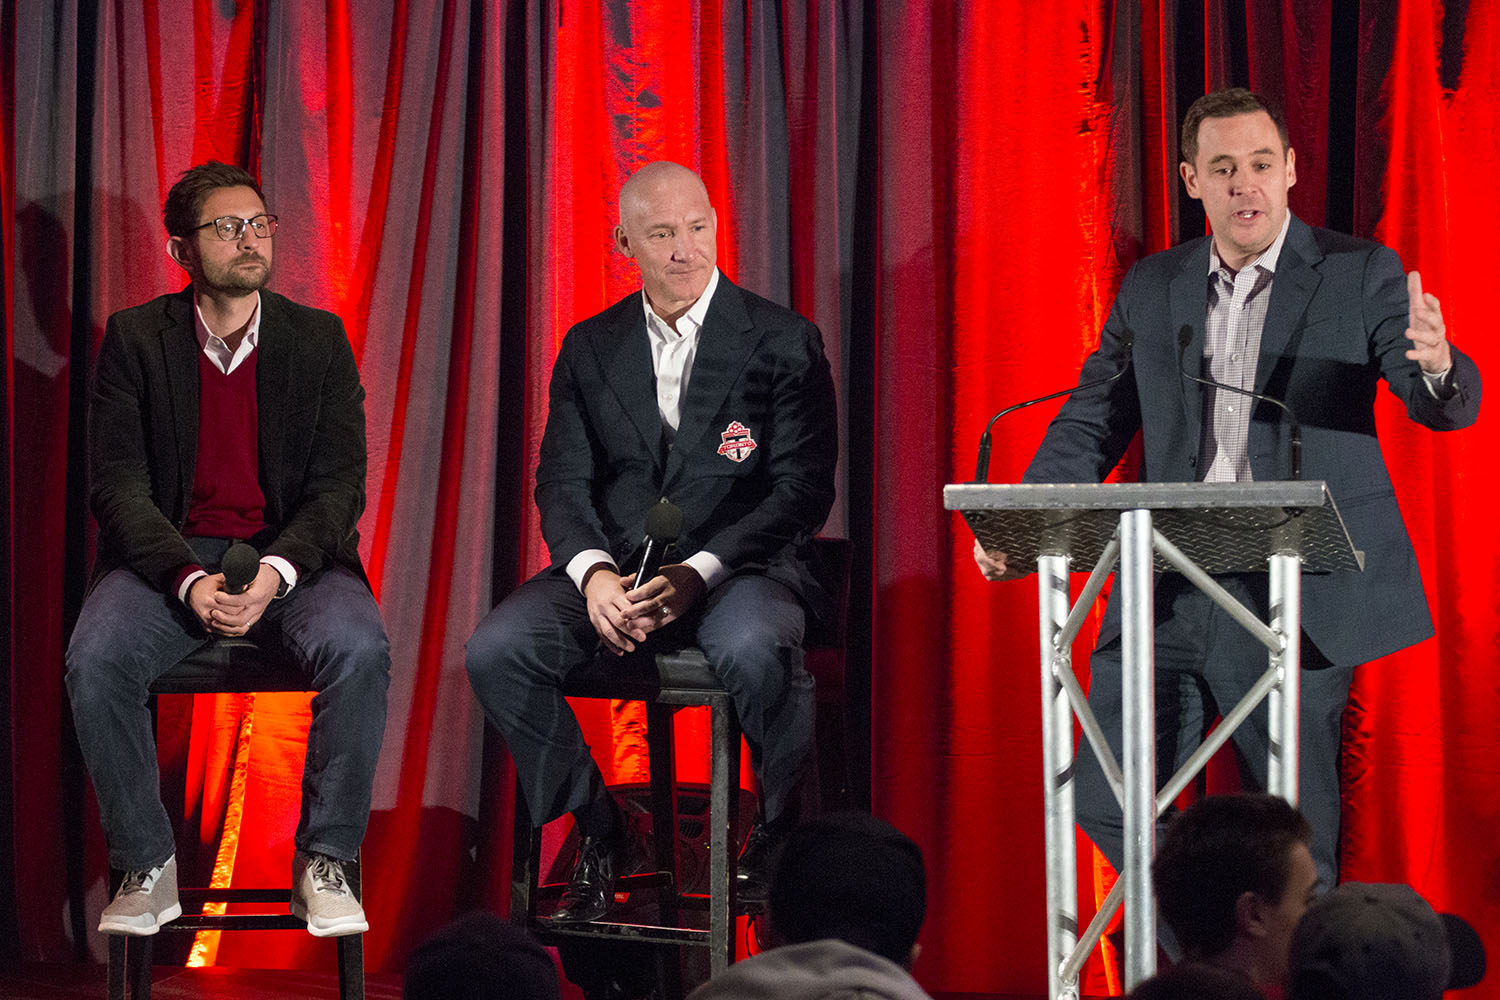 Tim Bezbatchenko, Bill Manning and Luke Wileman talk to season season holders at the Real Sports Bar and Grill in downtown Toronto, Canada. Image by Dennis Marciniak of denMAR Media.